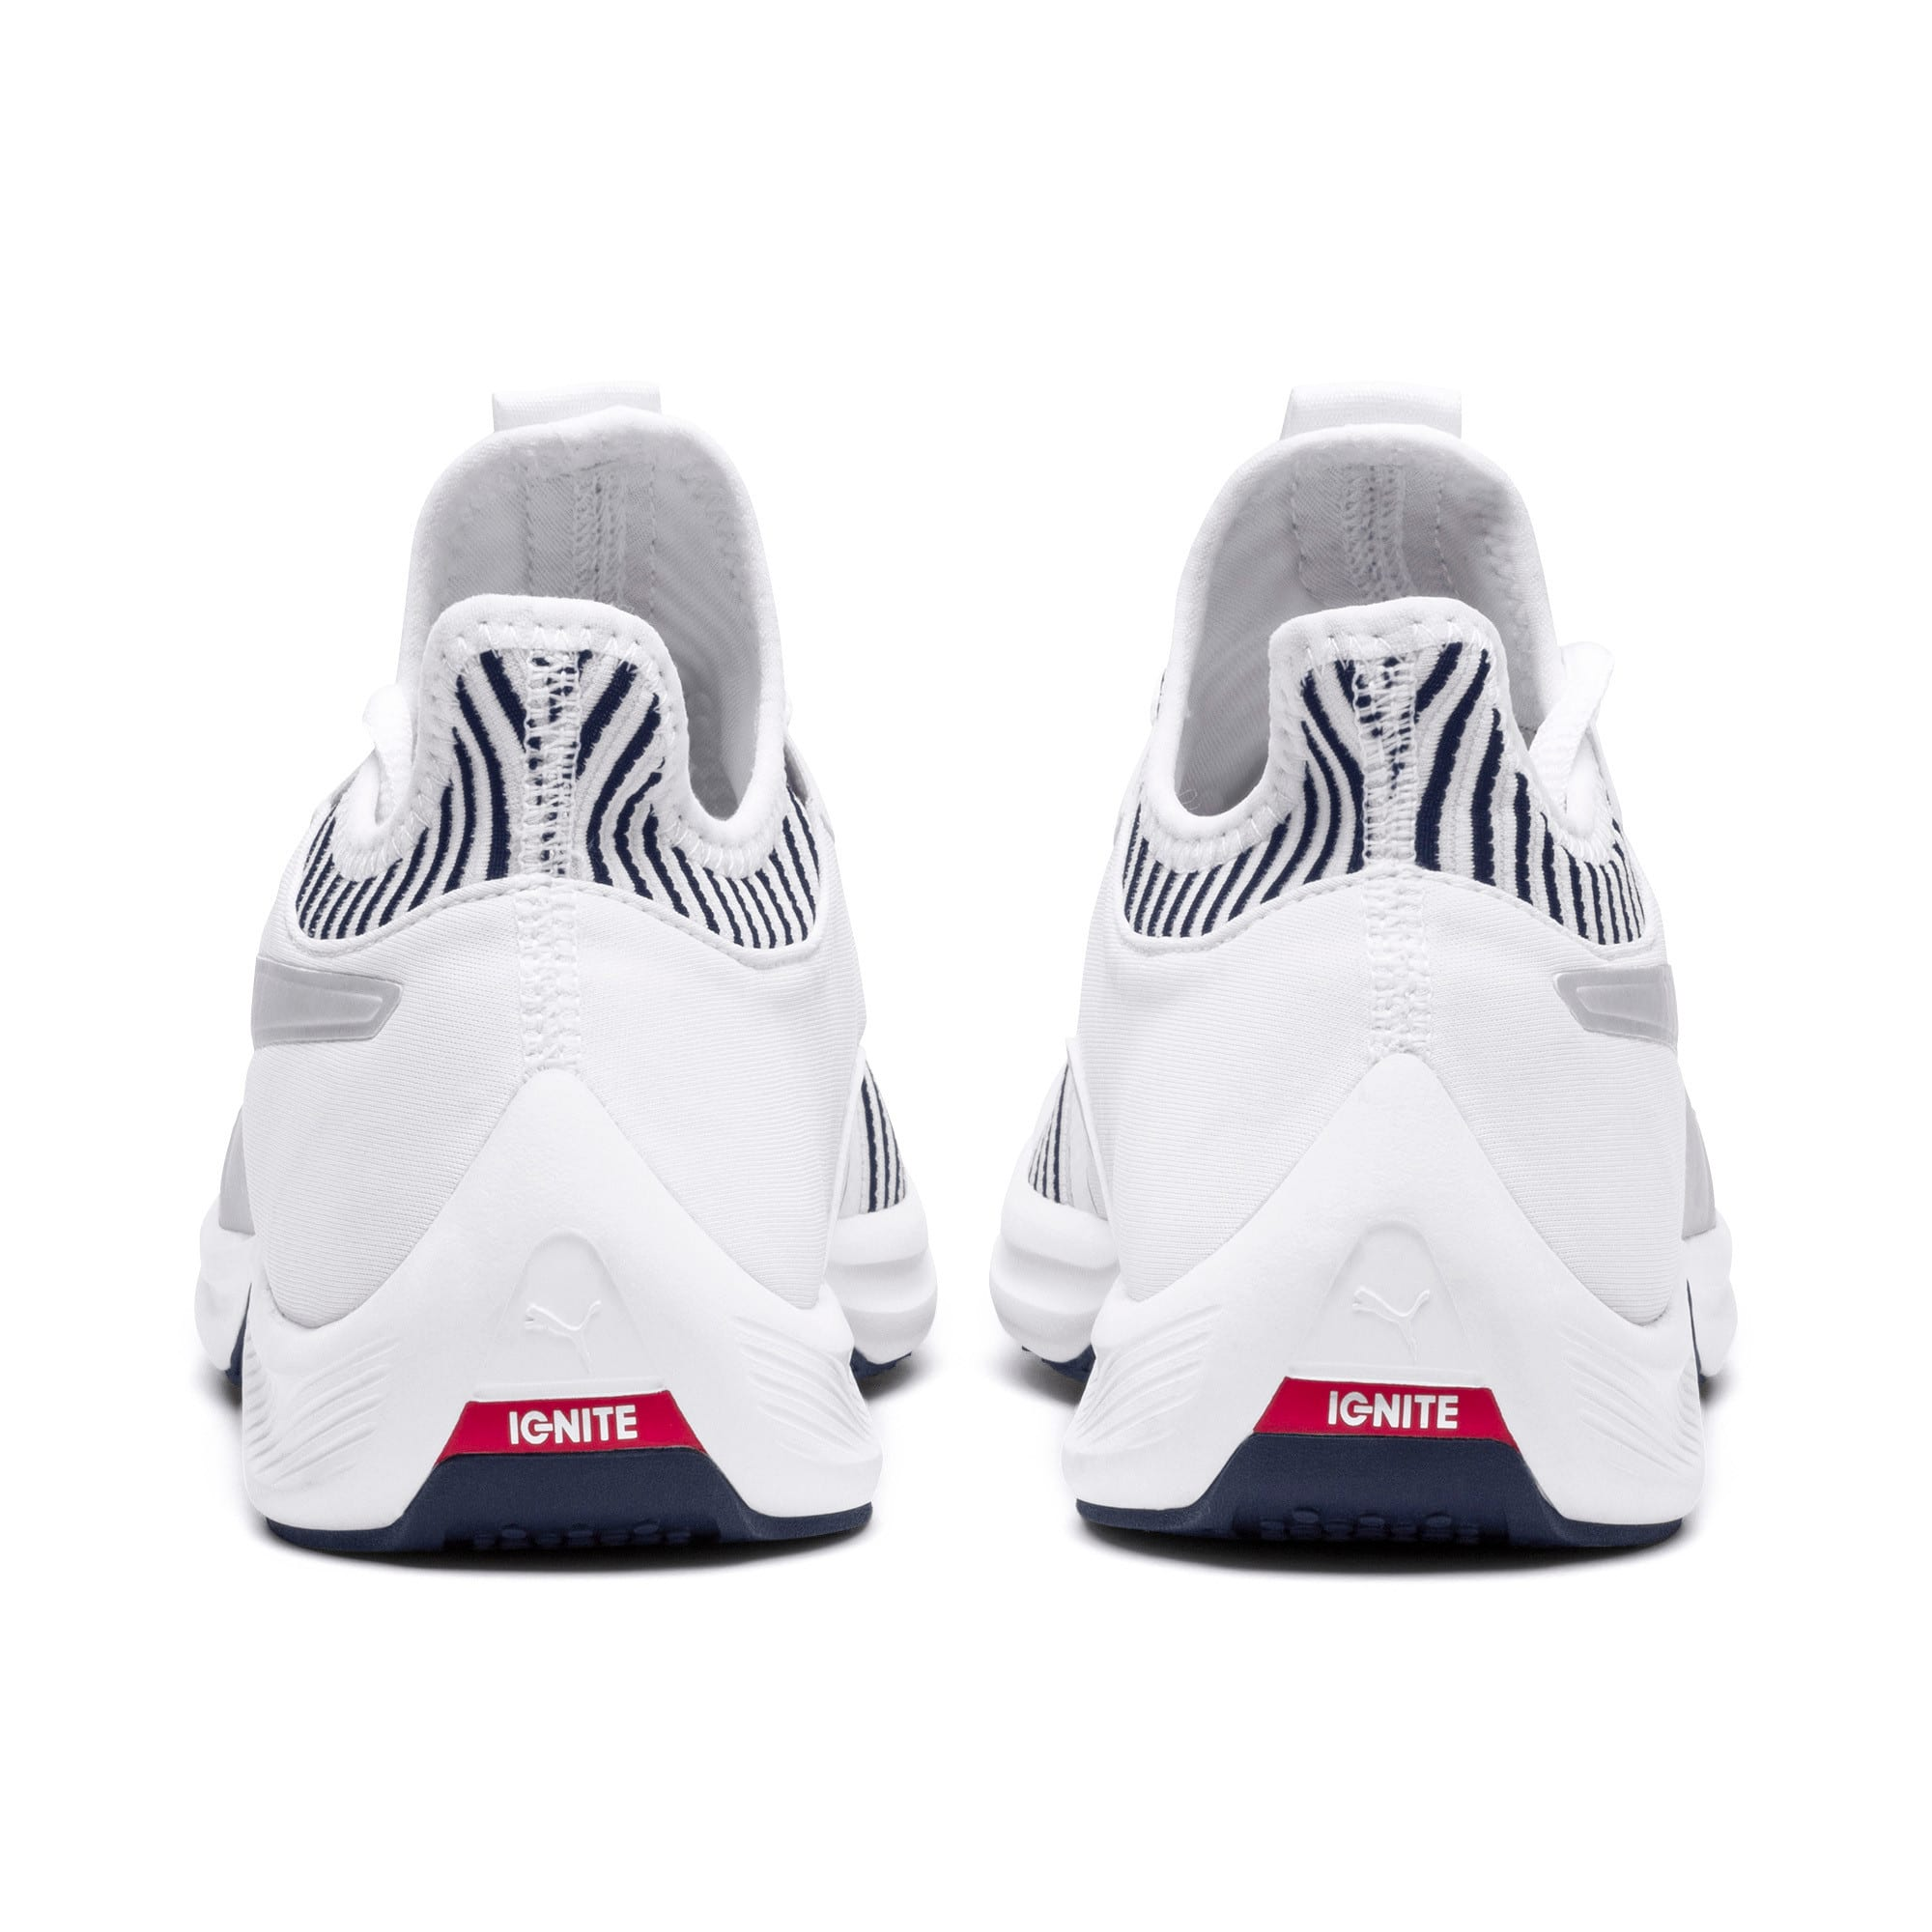 Thumbnail 4 of Amp XT Women's Trainers, Puma White-Peacoat, medium-IND